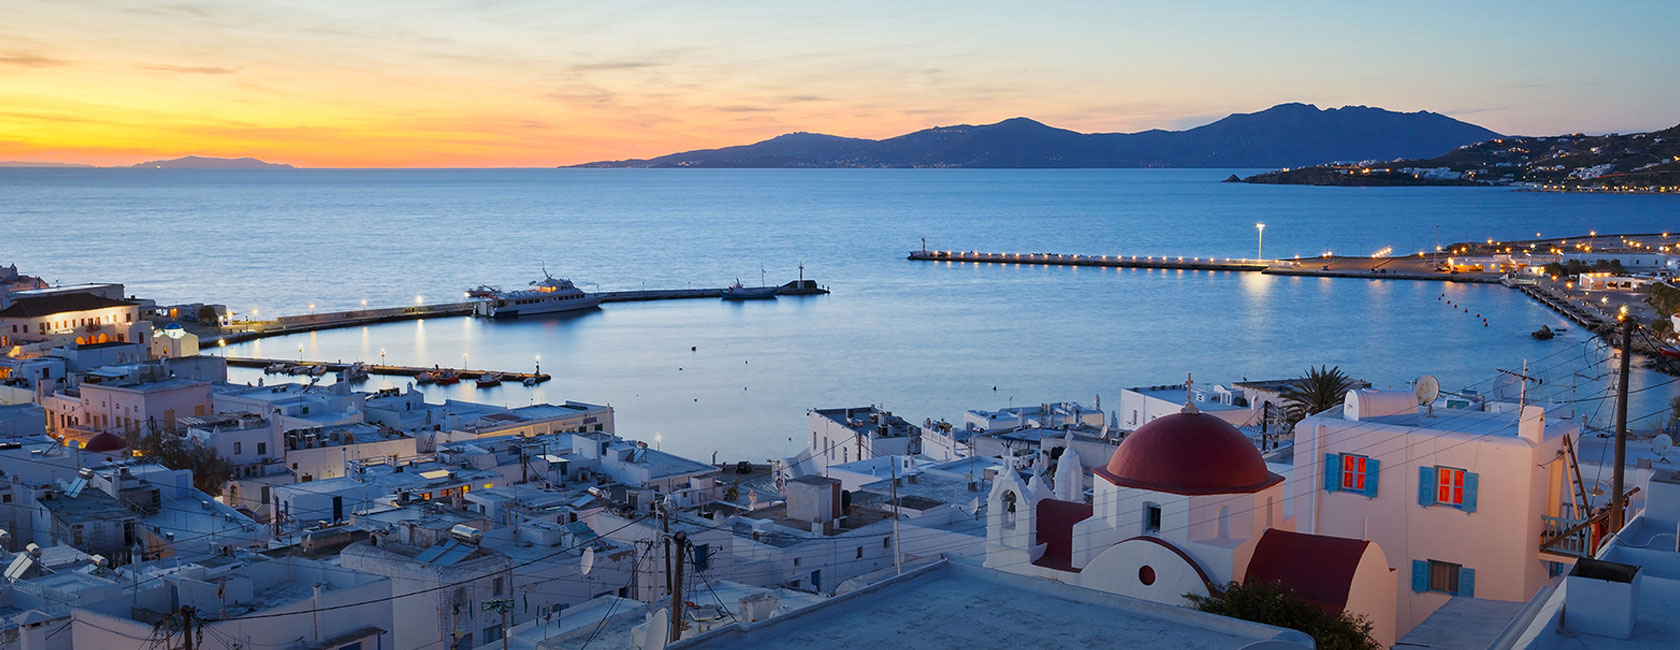 Summer meeting 2016: The Cyclades